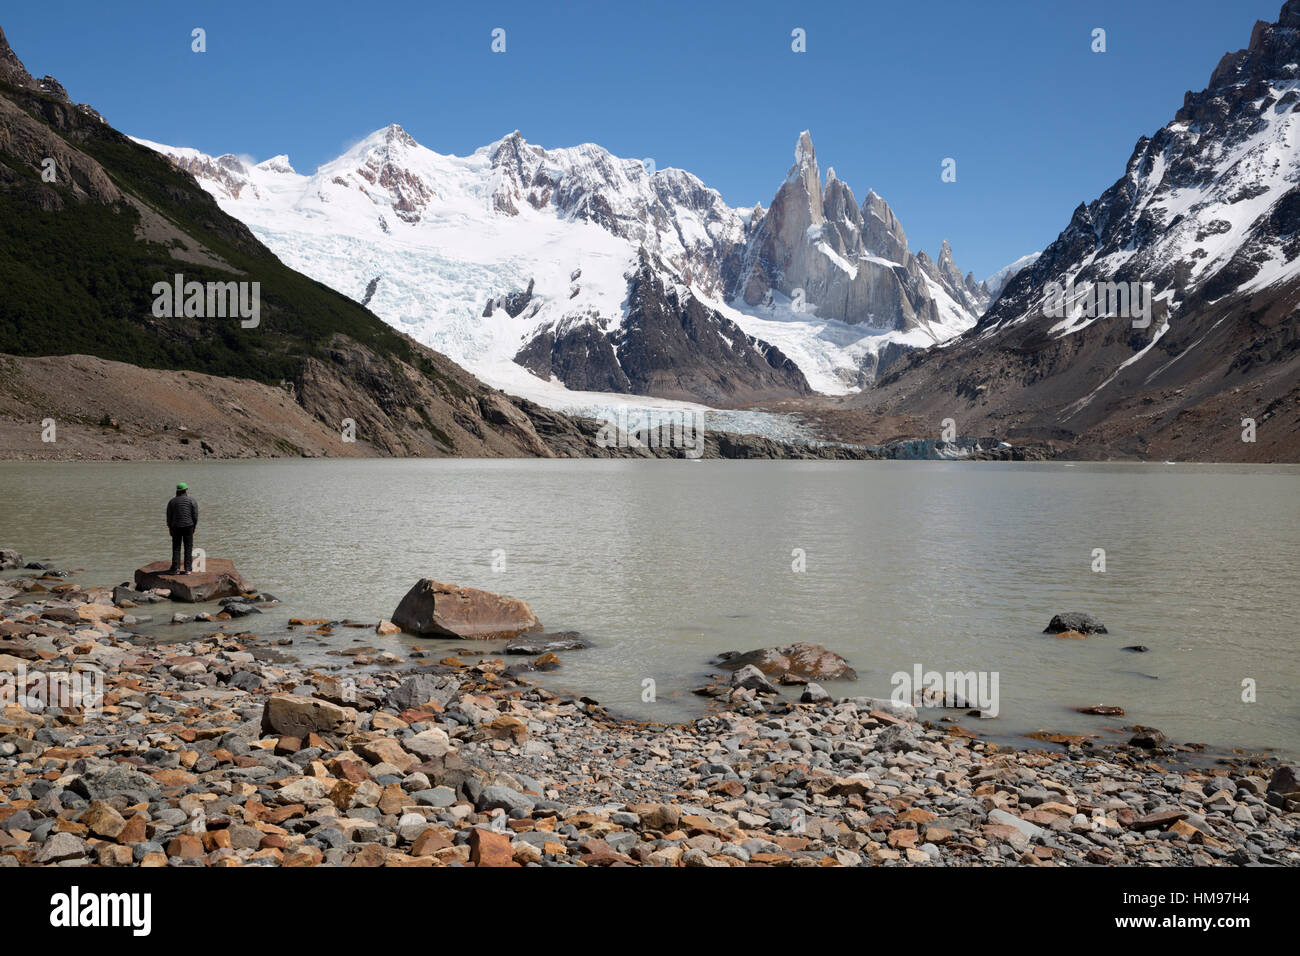 Laguna Torre with view of Cerro Torre and Glaciar Grande, El Chalten, Patagonia, Argentina, South America - Stock Image